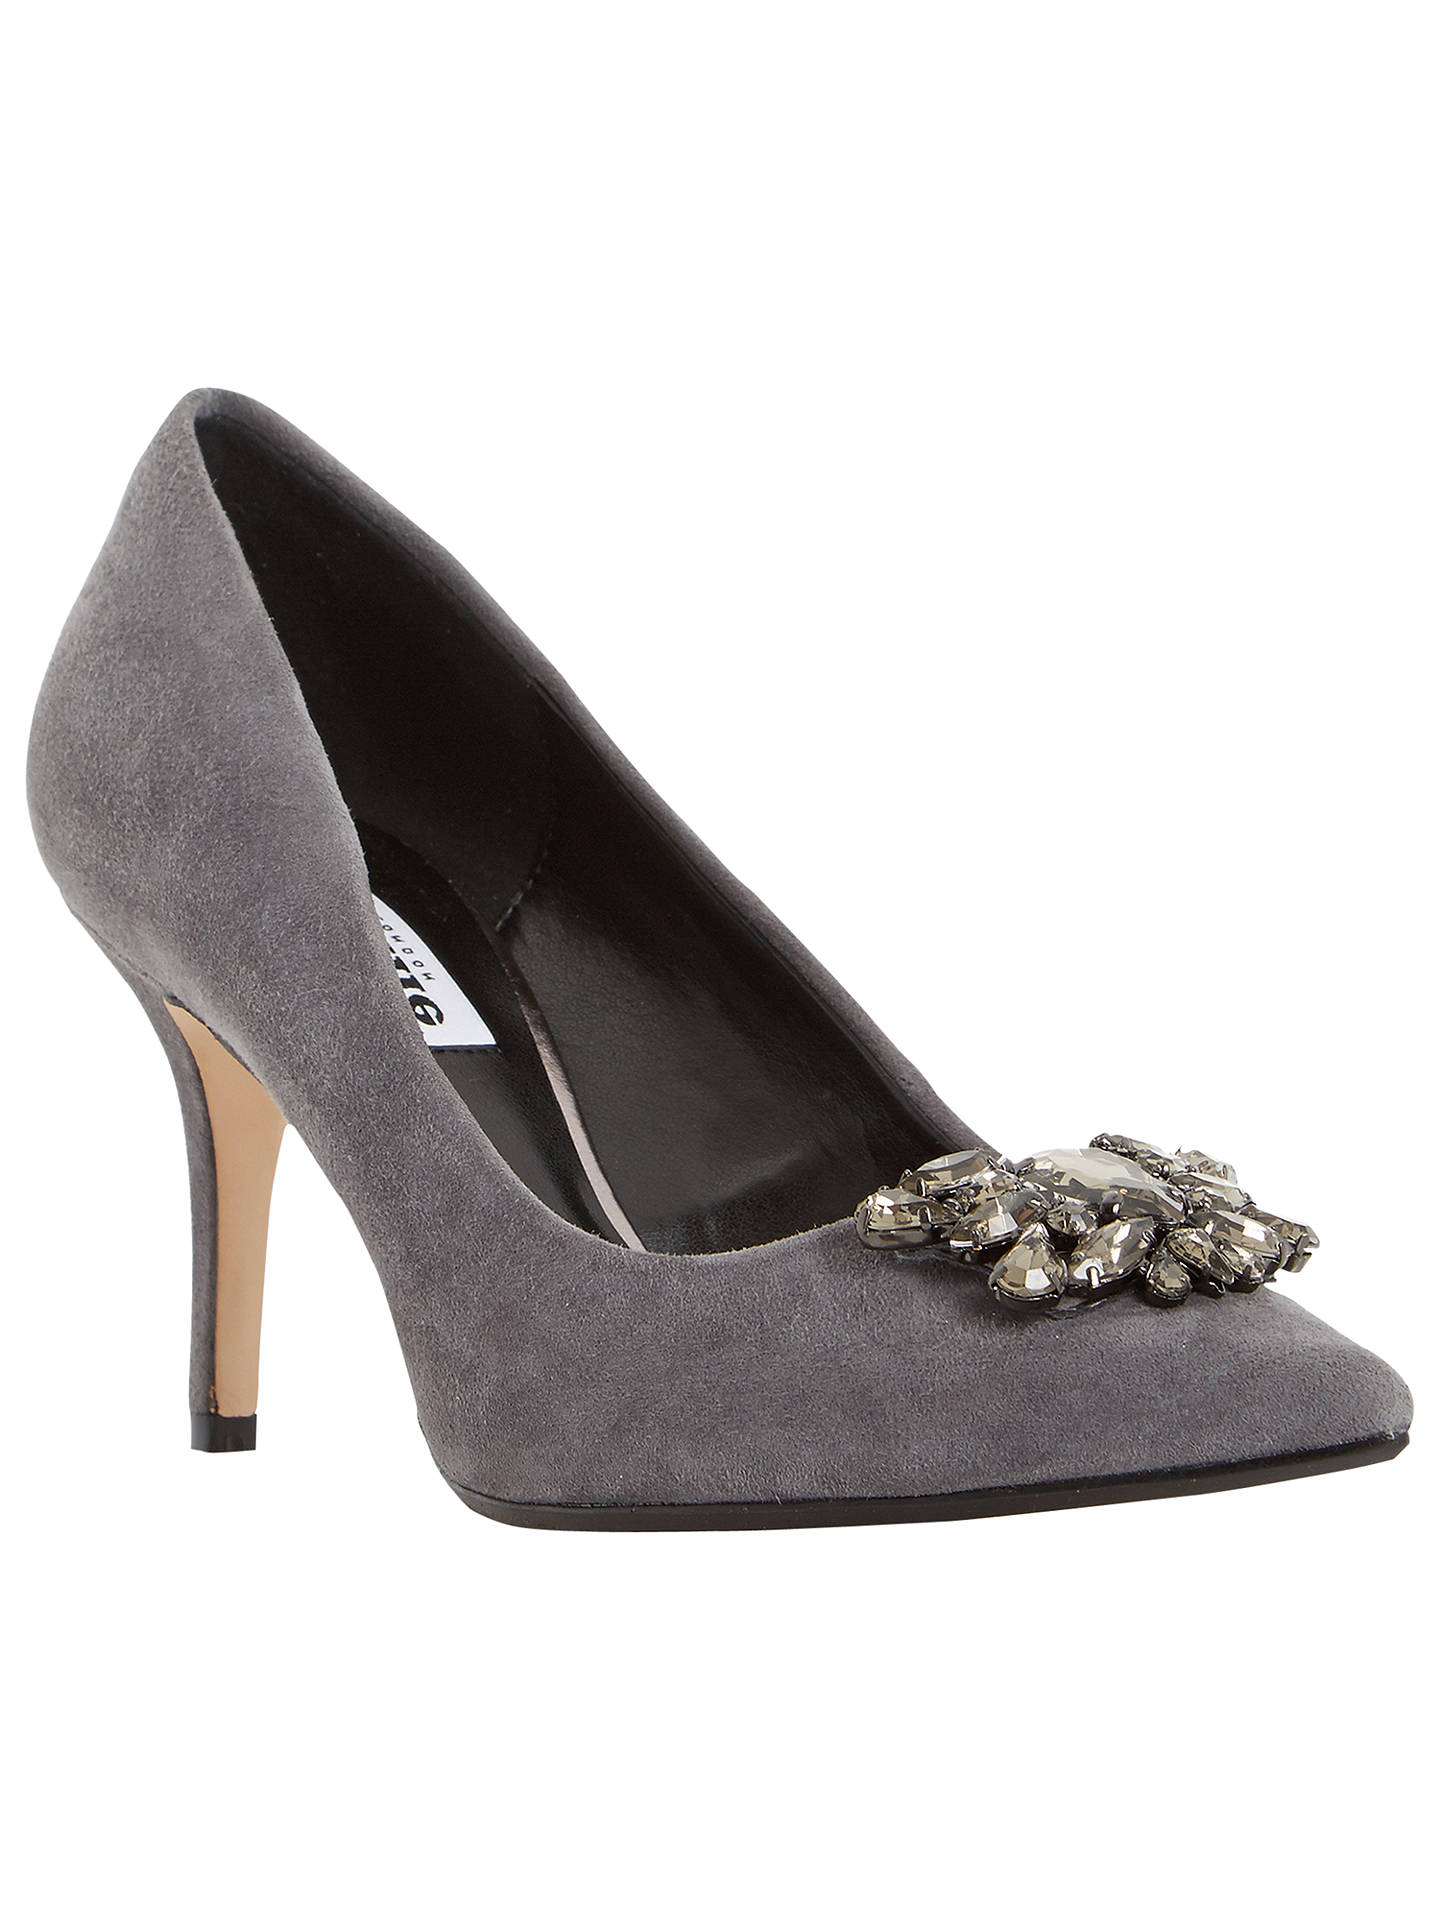 0af36a918afe4 Buy Dune Belles Embellished Court Shoes, Grey Suede, 3 Online at  johnlewis.com ...